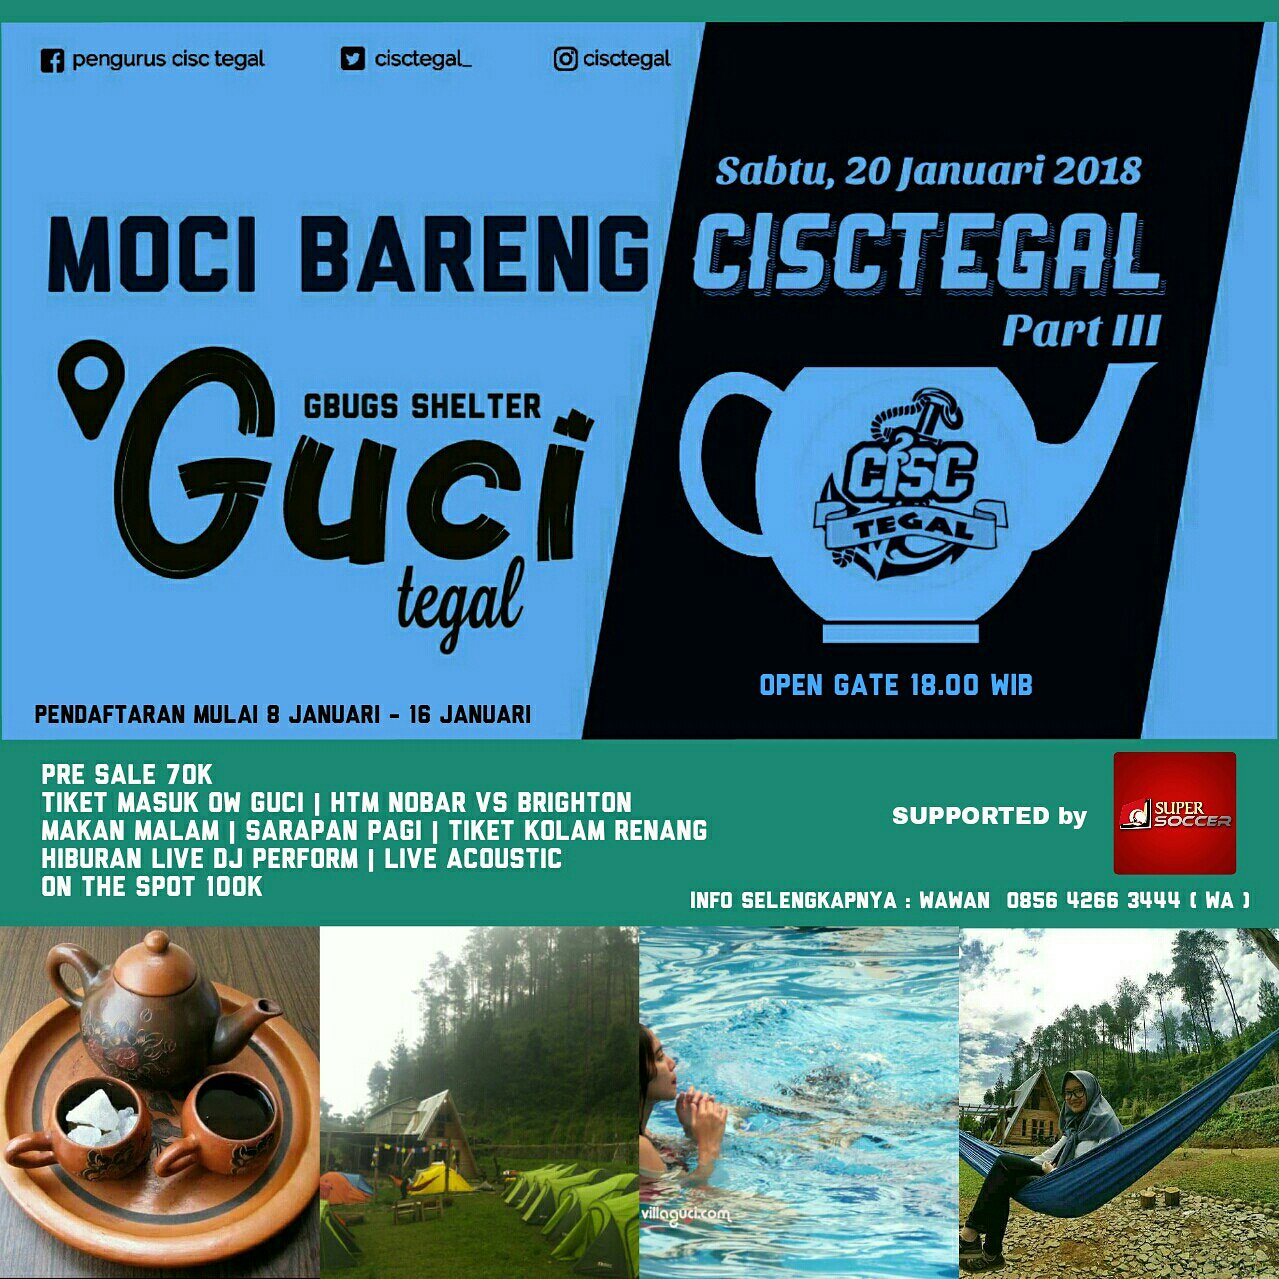 MOCI BARENG CISC TEGAL PART III